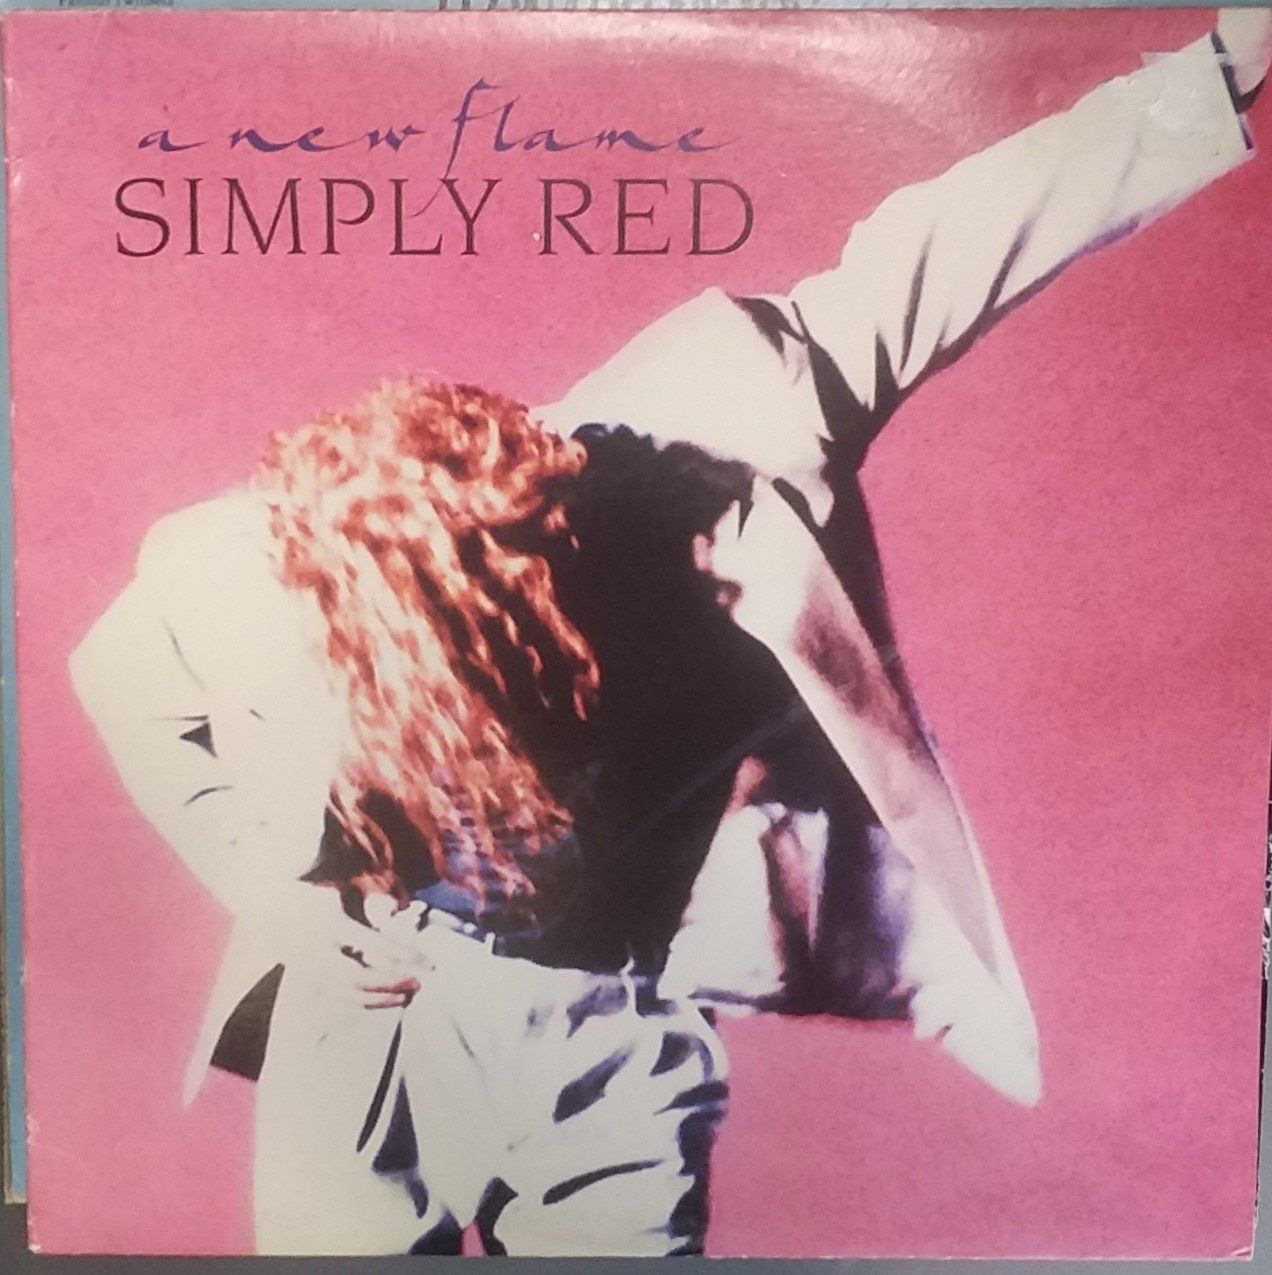 Simply Red A New Flame Vintage Record Album Vinyl Lp Classic 1980 S Blues Rock Blue Eyed Soul British Blues Rock Simply Red Music History Pop Rock Music